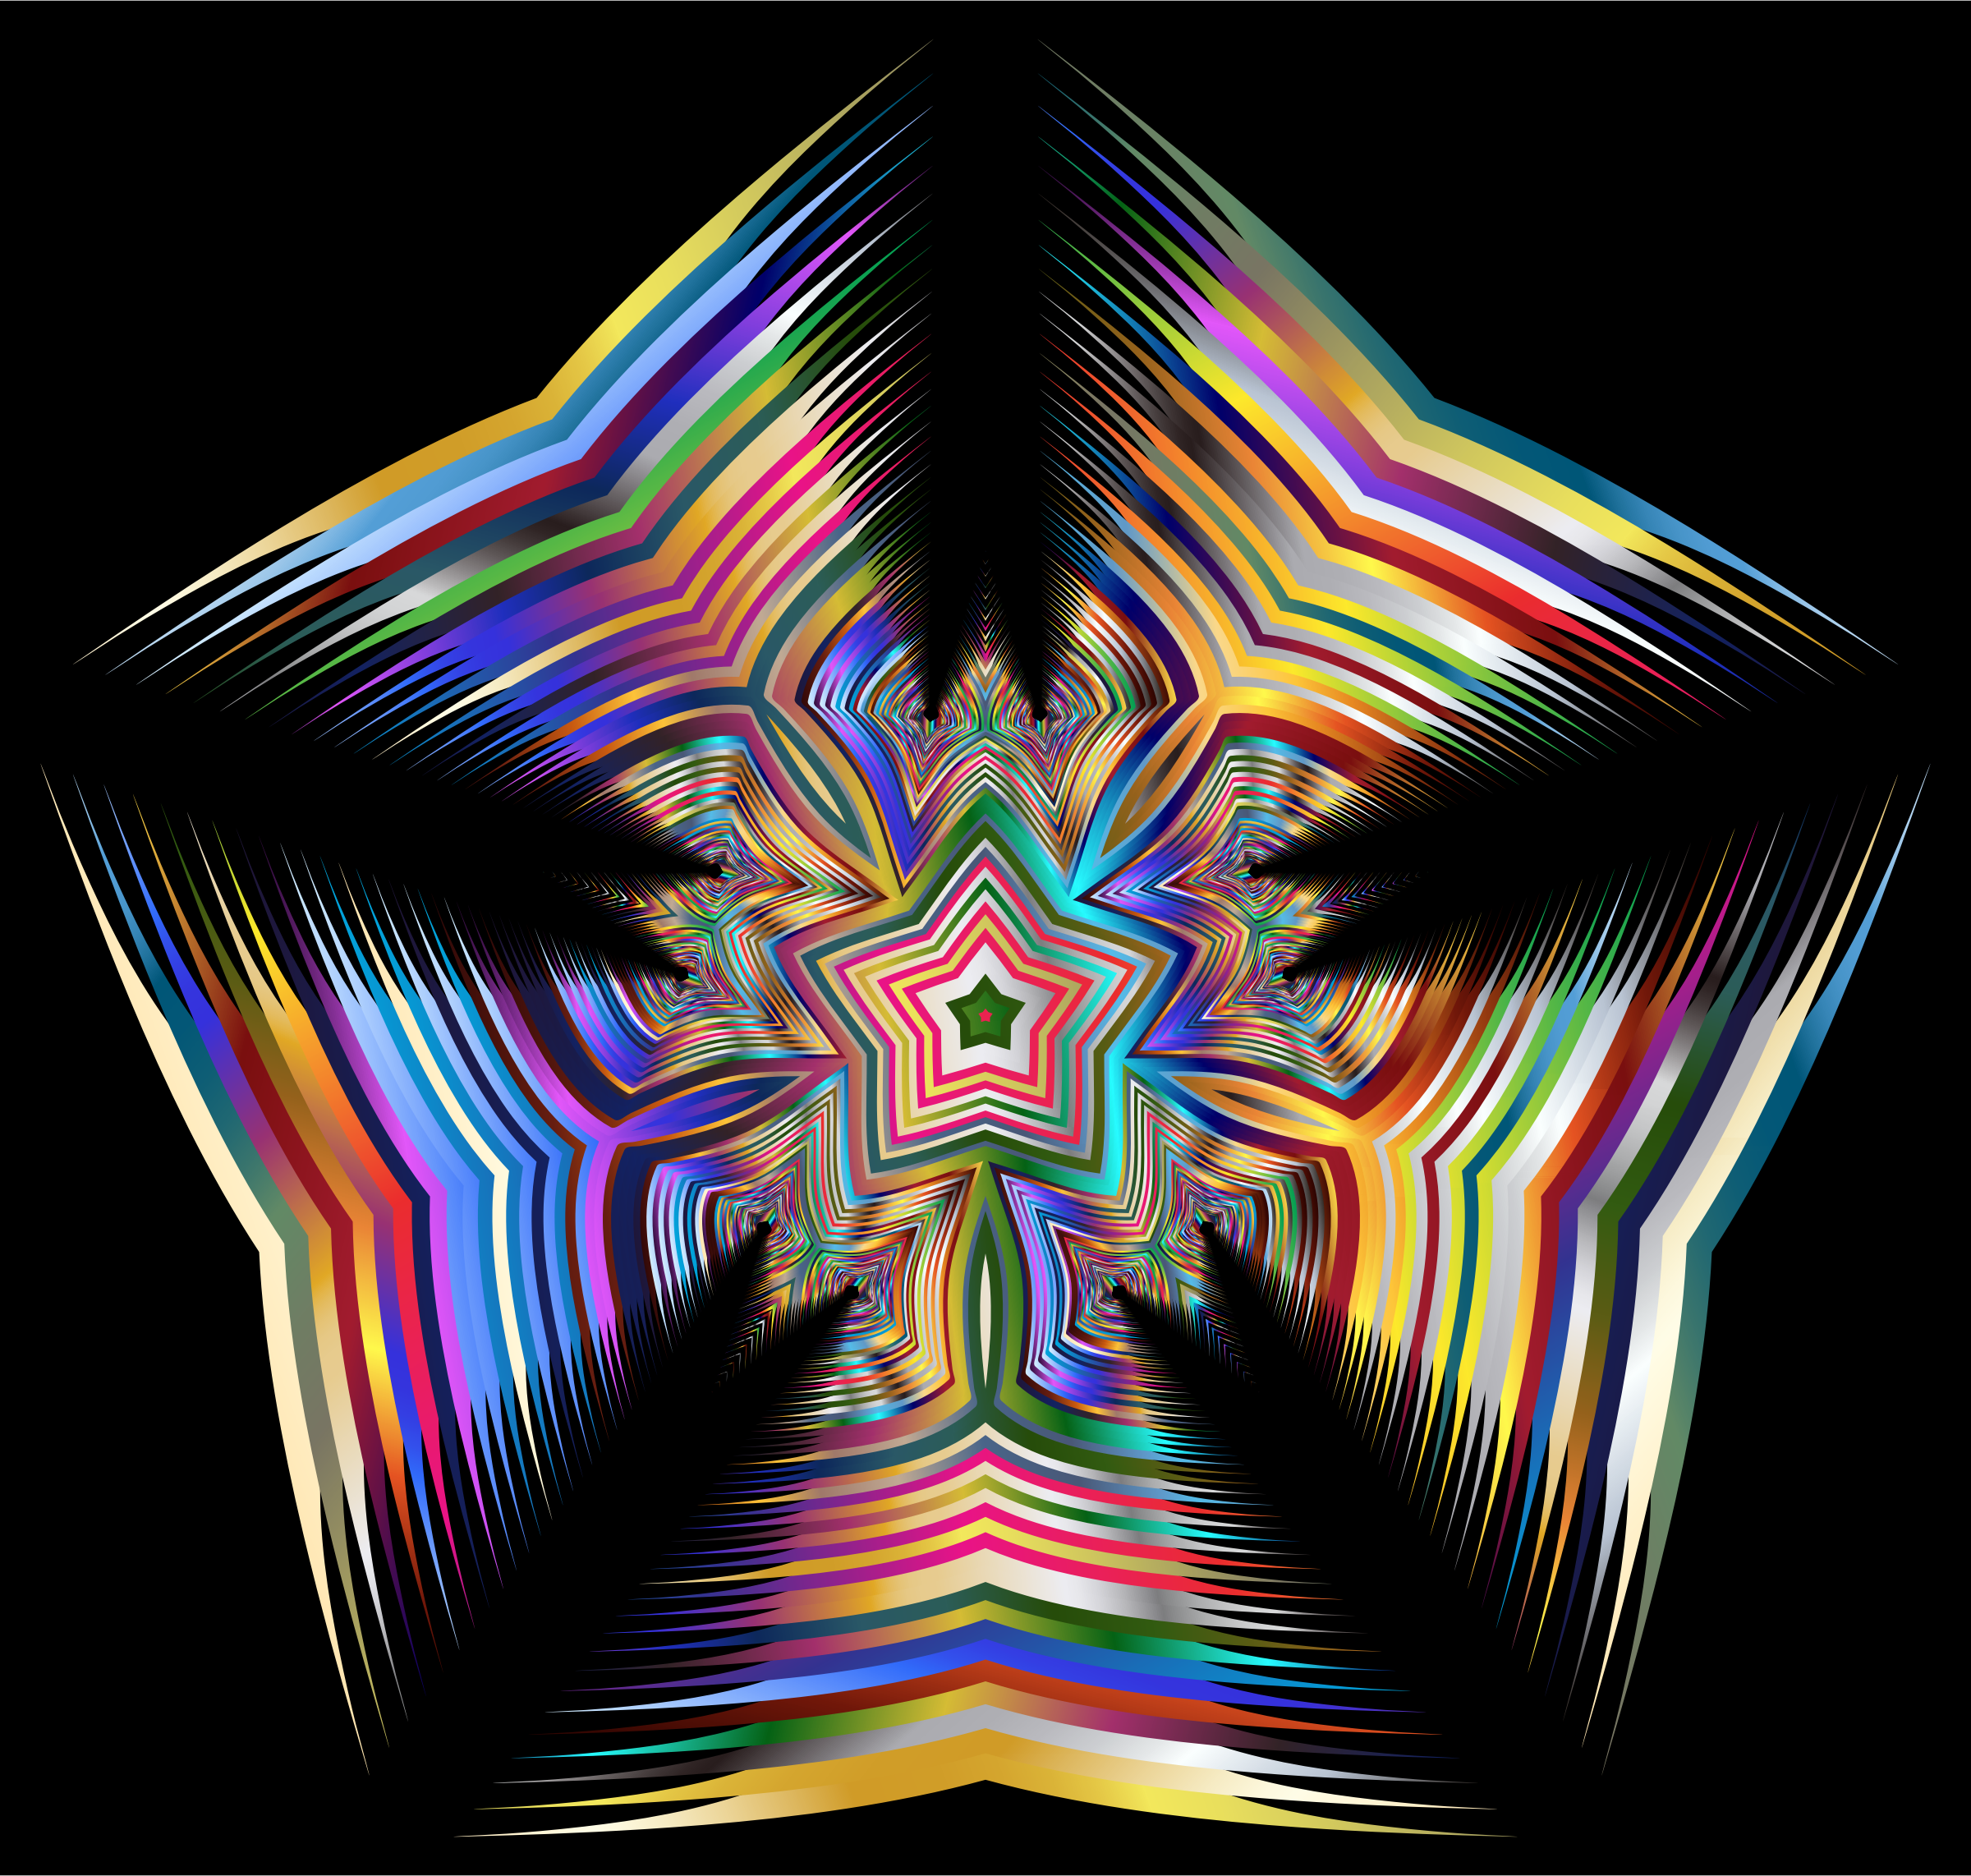 Prismatic Star Line Art 3 by GDJ